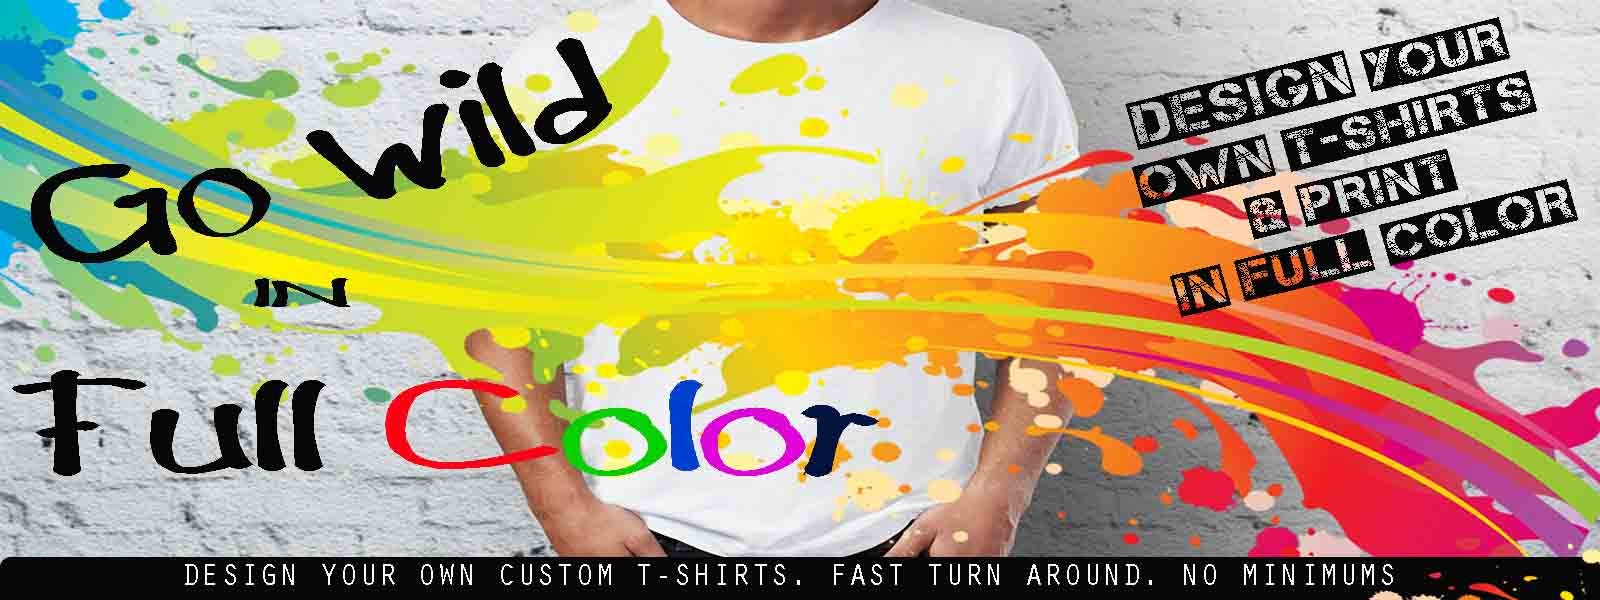 Go Wild in Full Color